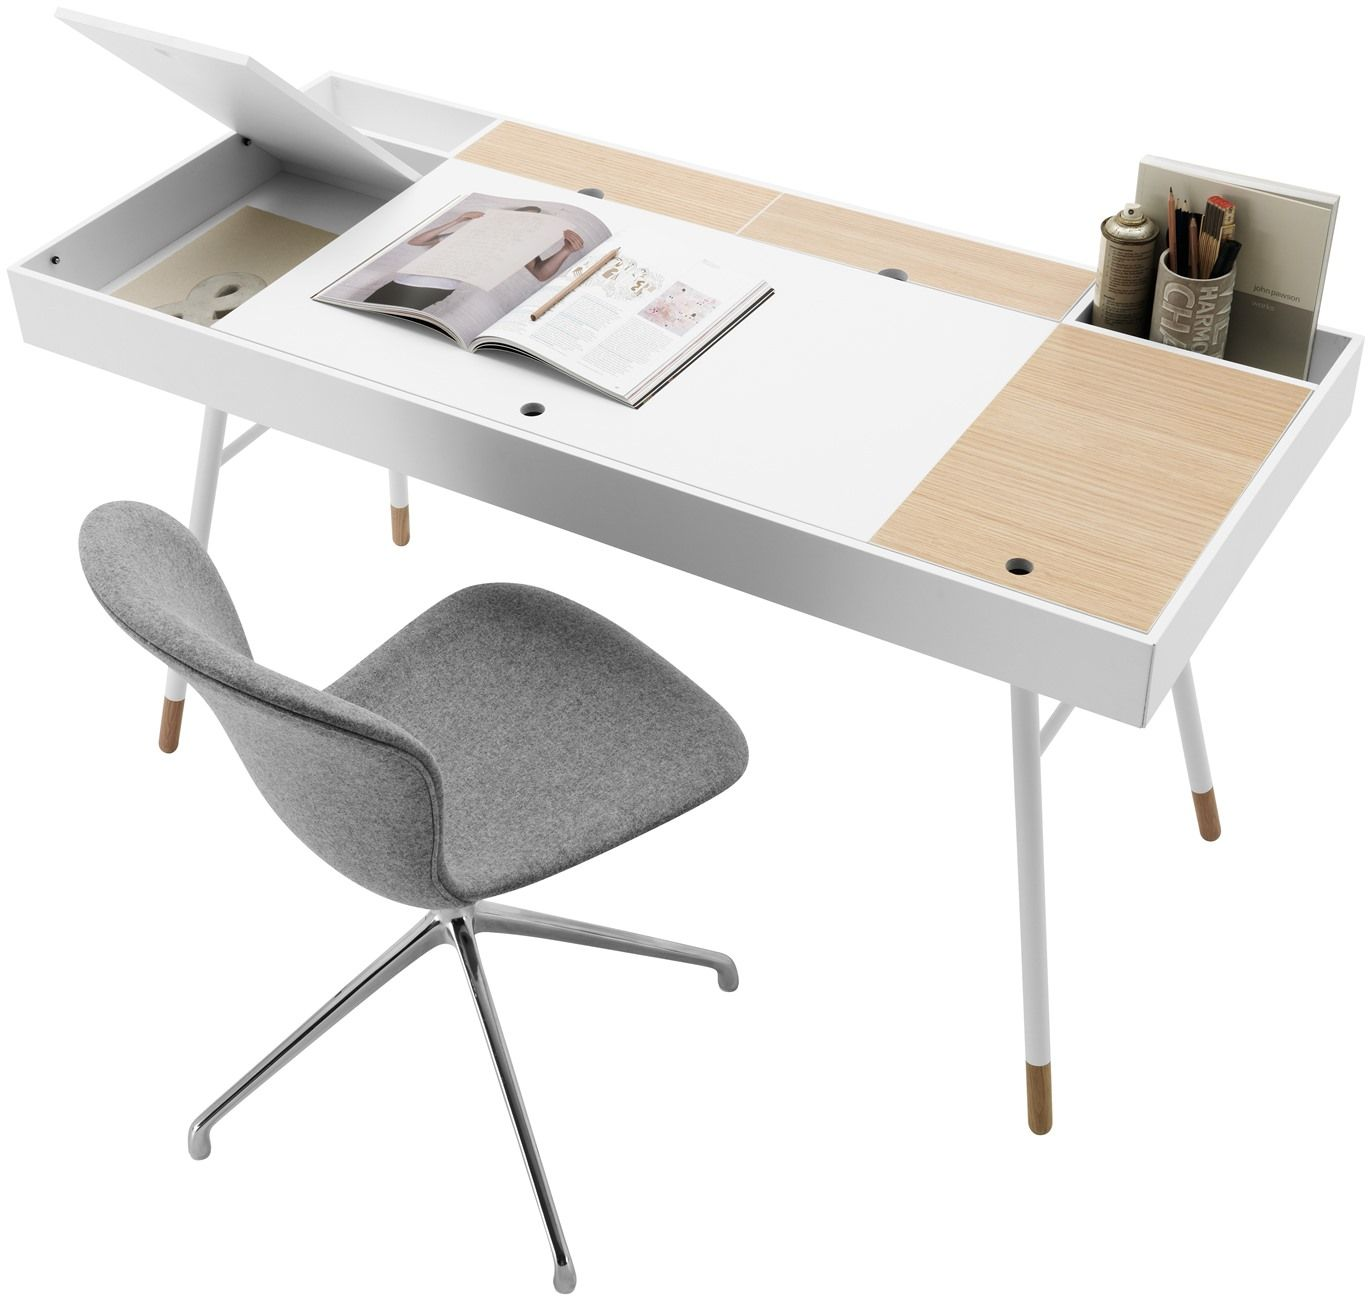 Create the perfect hi tech ergonomic home office